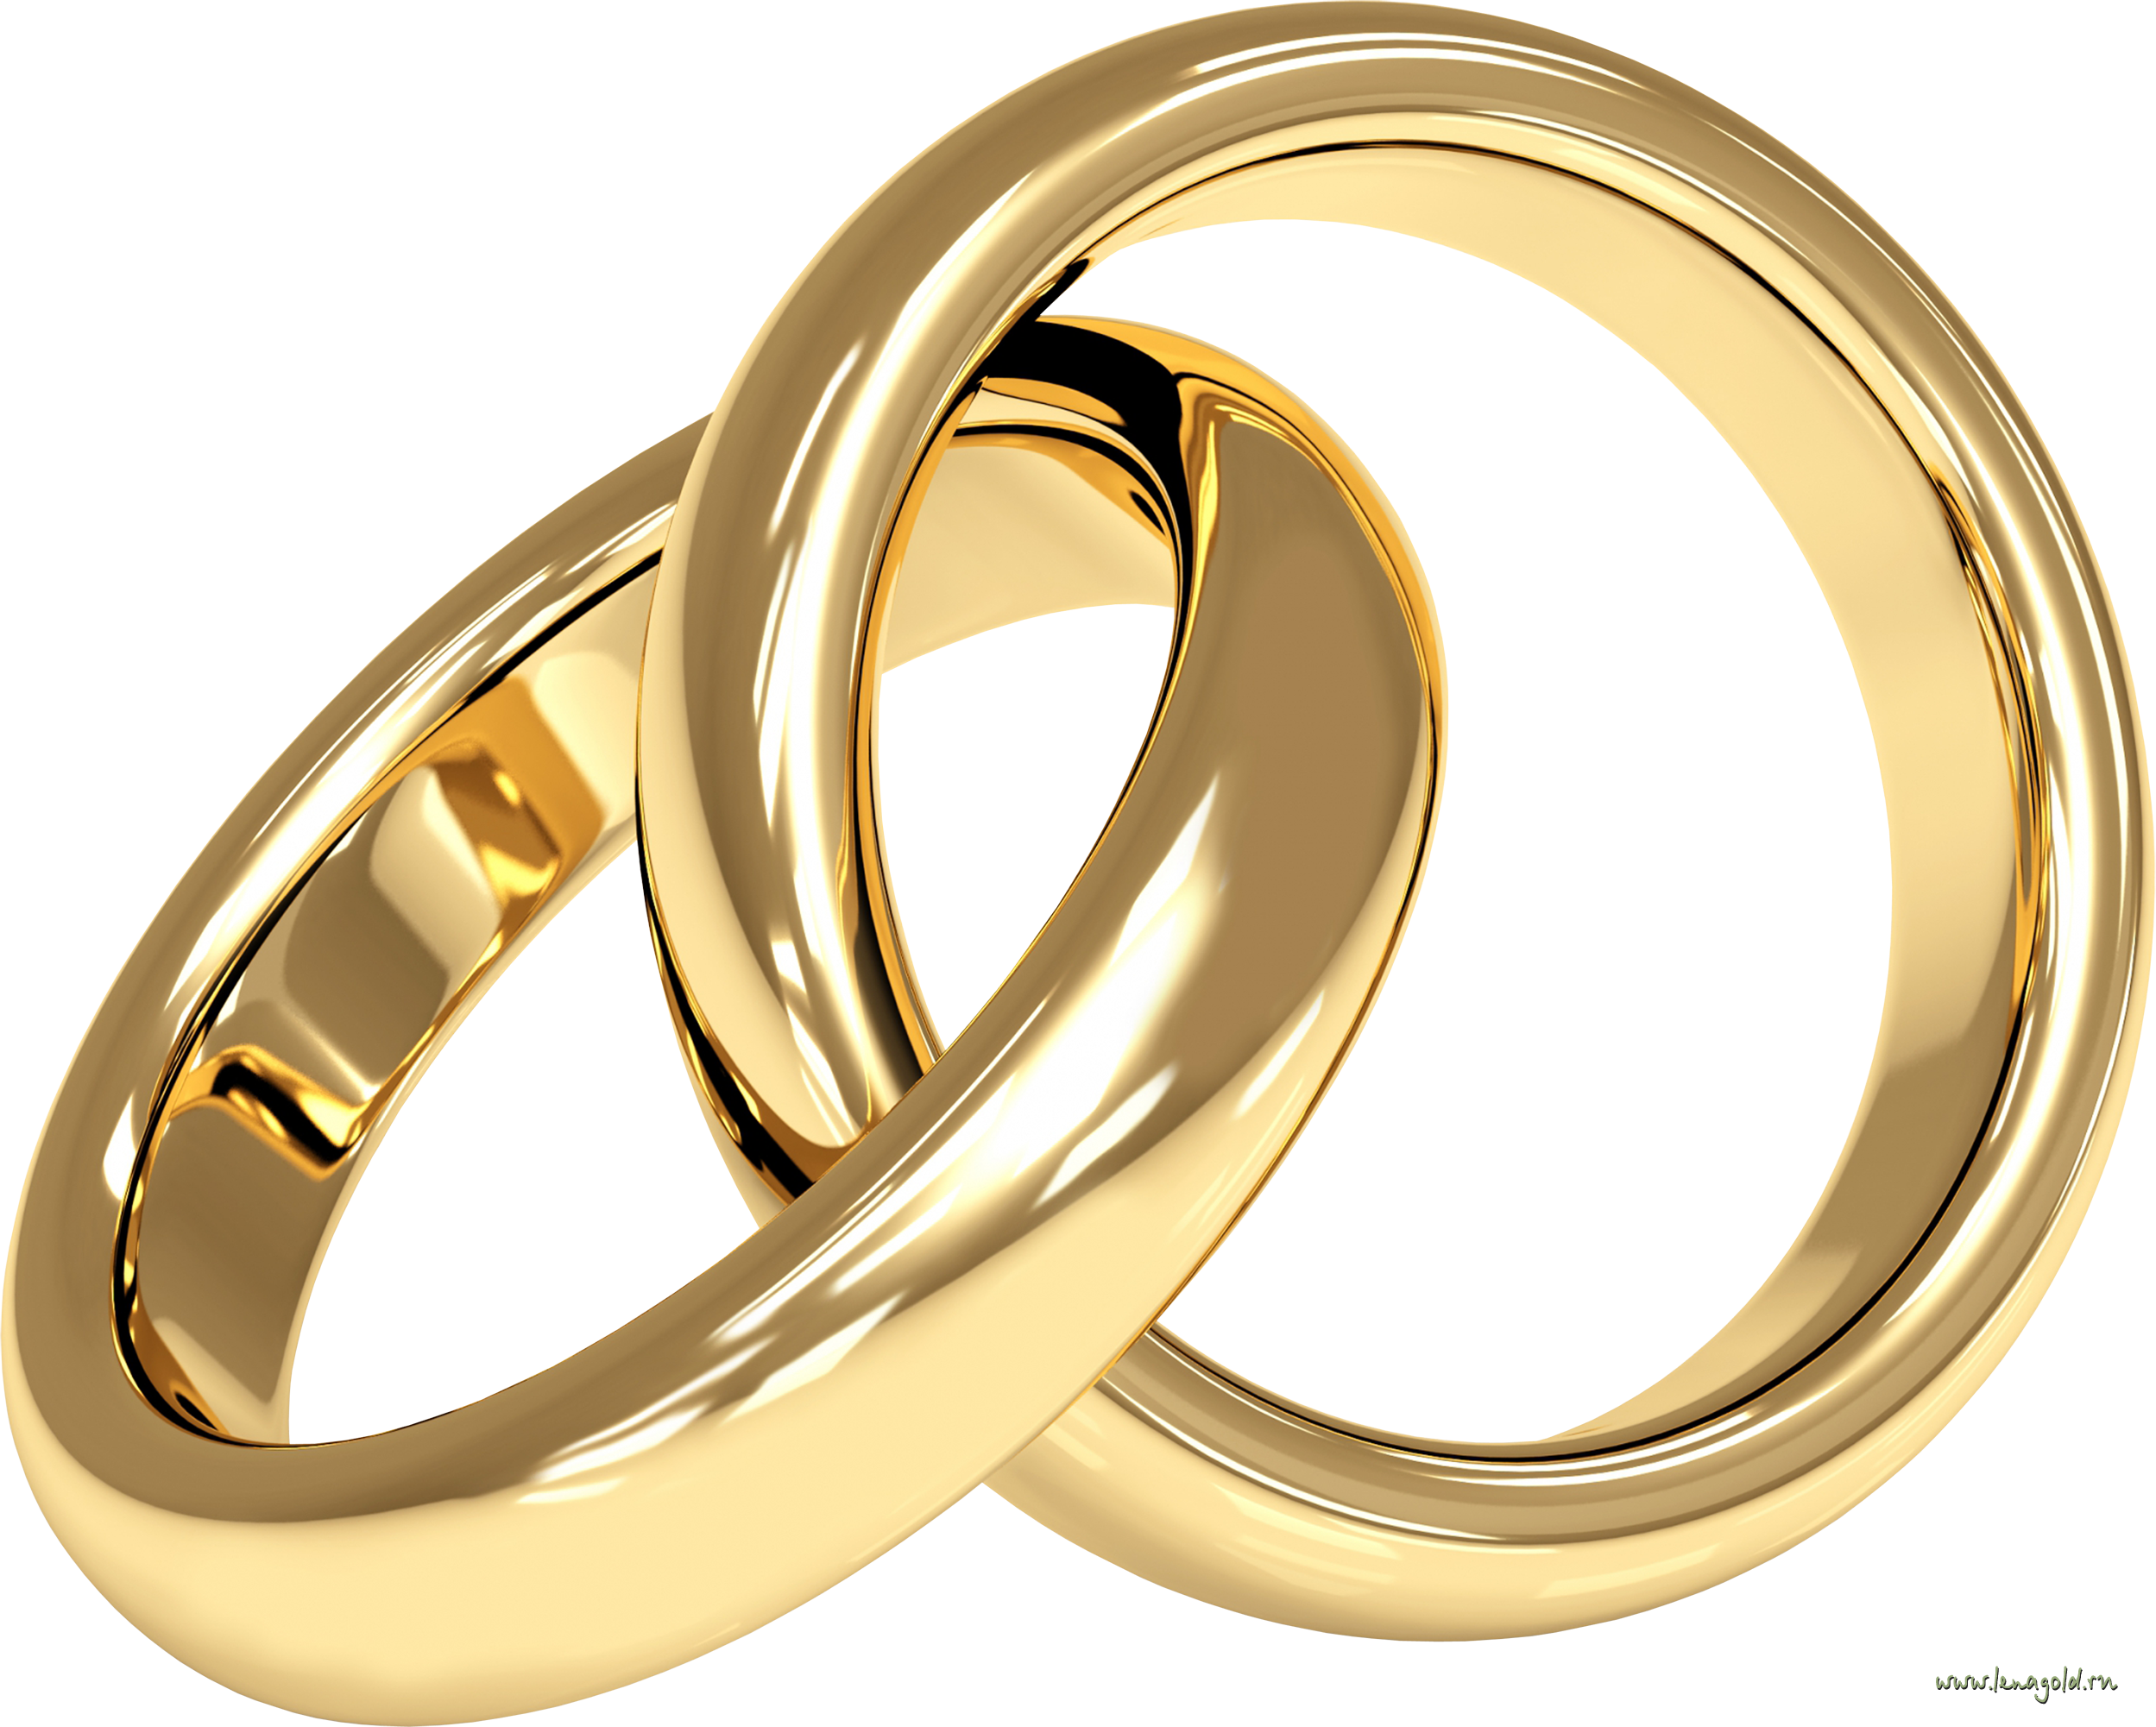 weddingrings.png